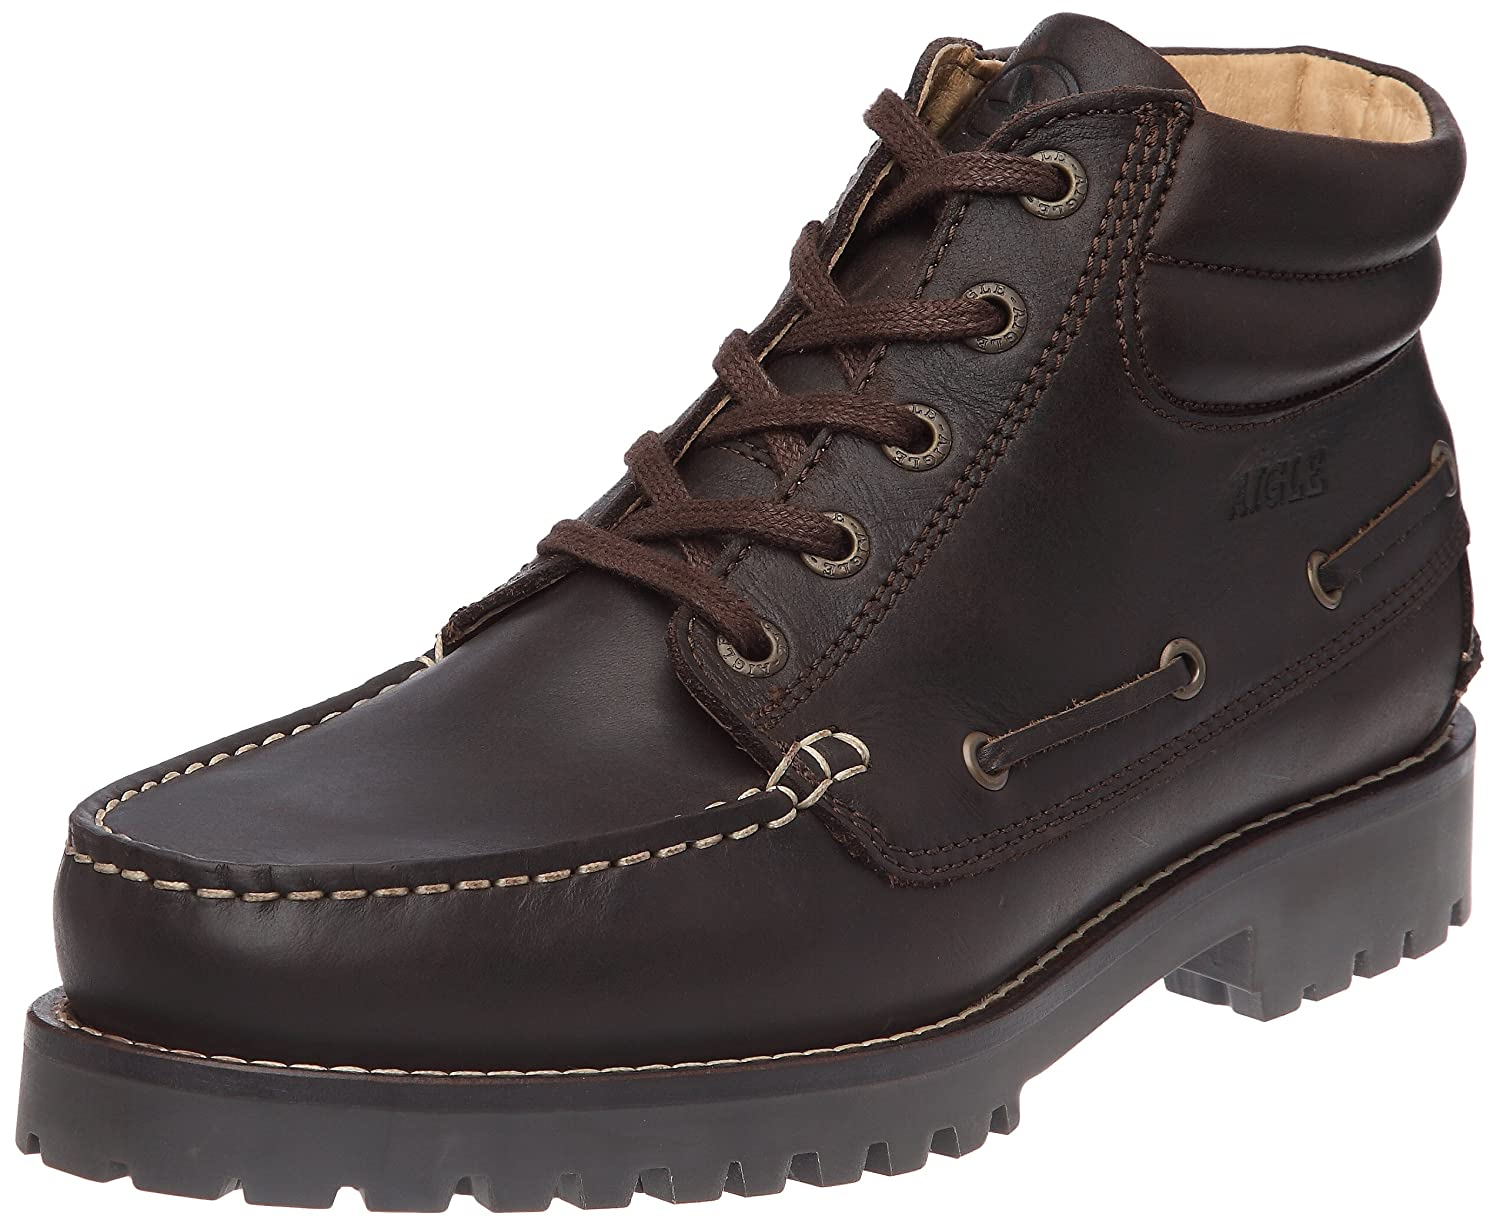 Tarmac - Mocassins - Homme - Marron (Marron/Camel) - FR : 39 (Taille Fabricant : 39)Aigle vpeOM